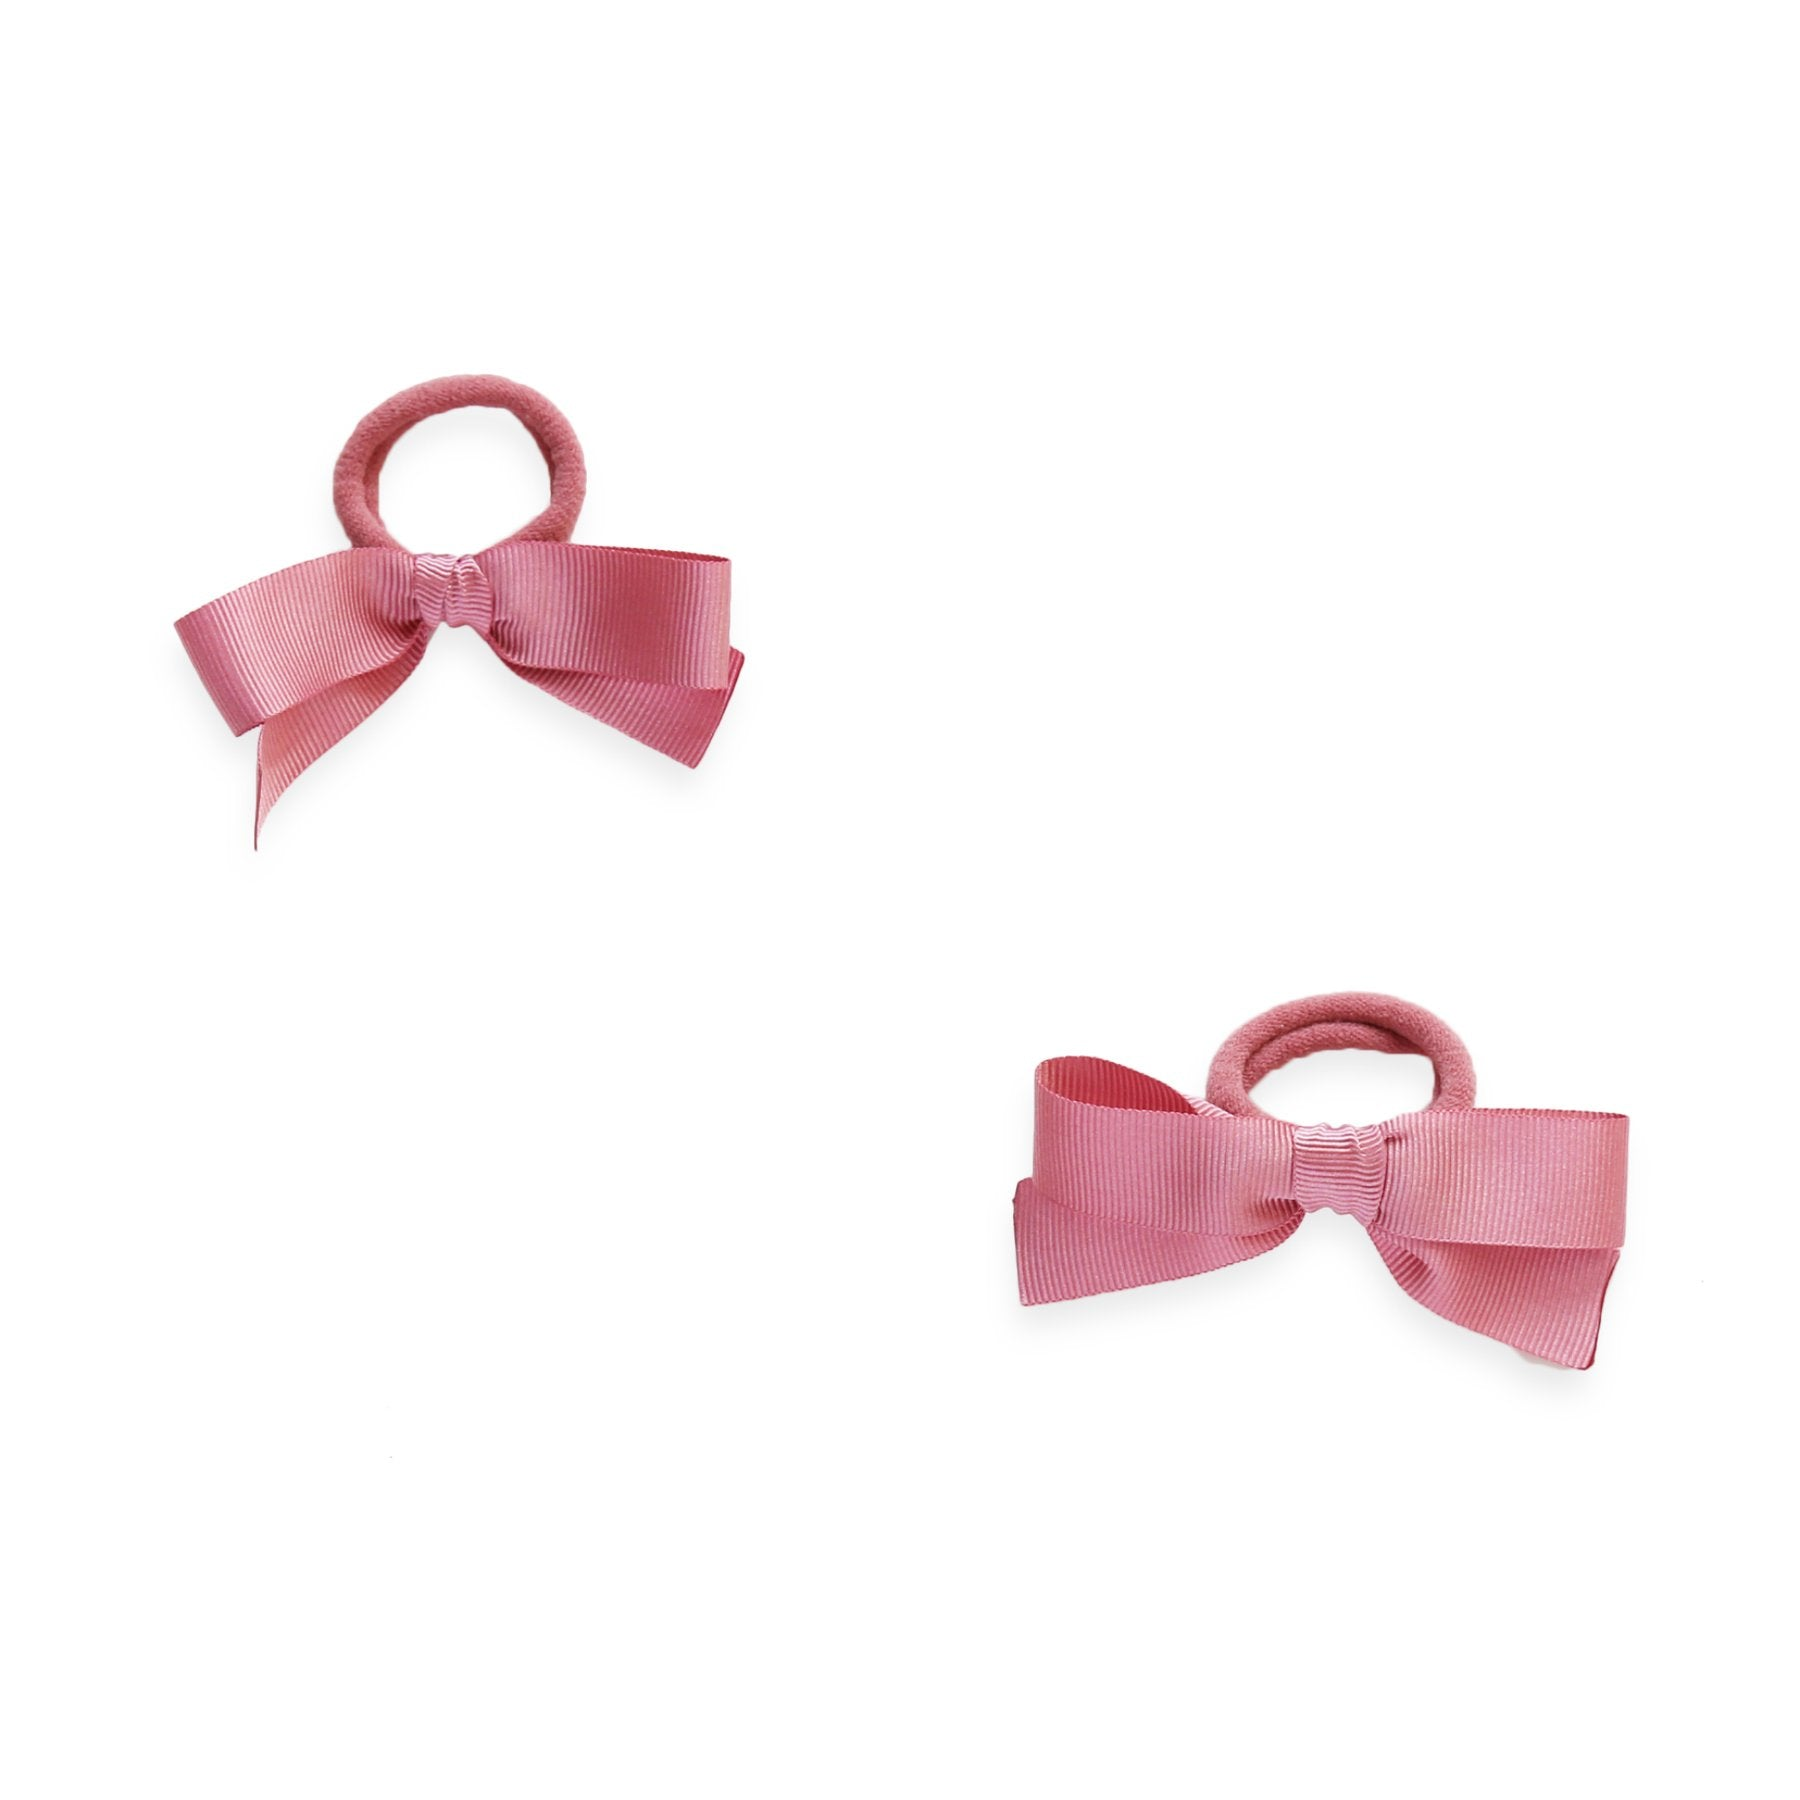 Grosgrain Hair Ties - Old Pink